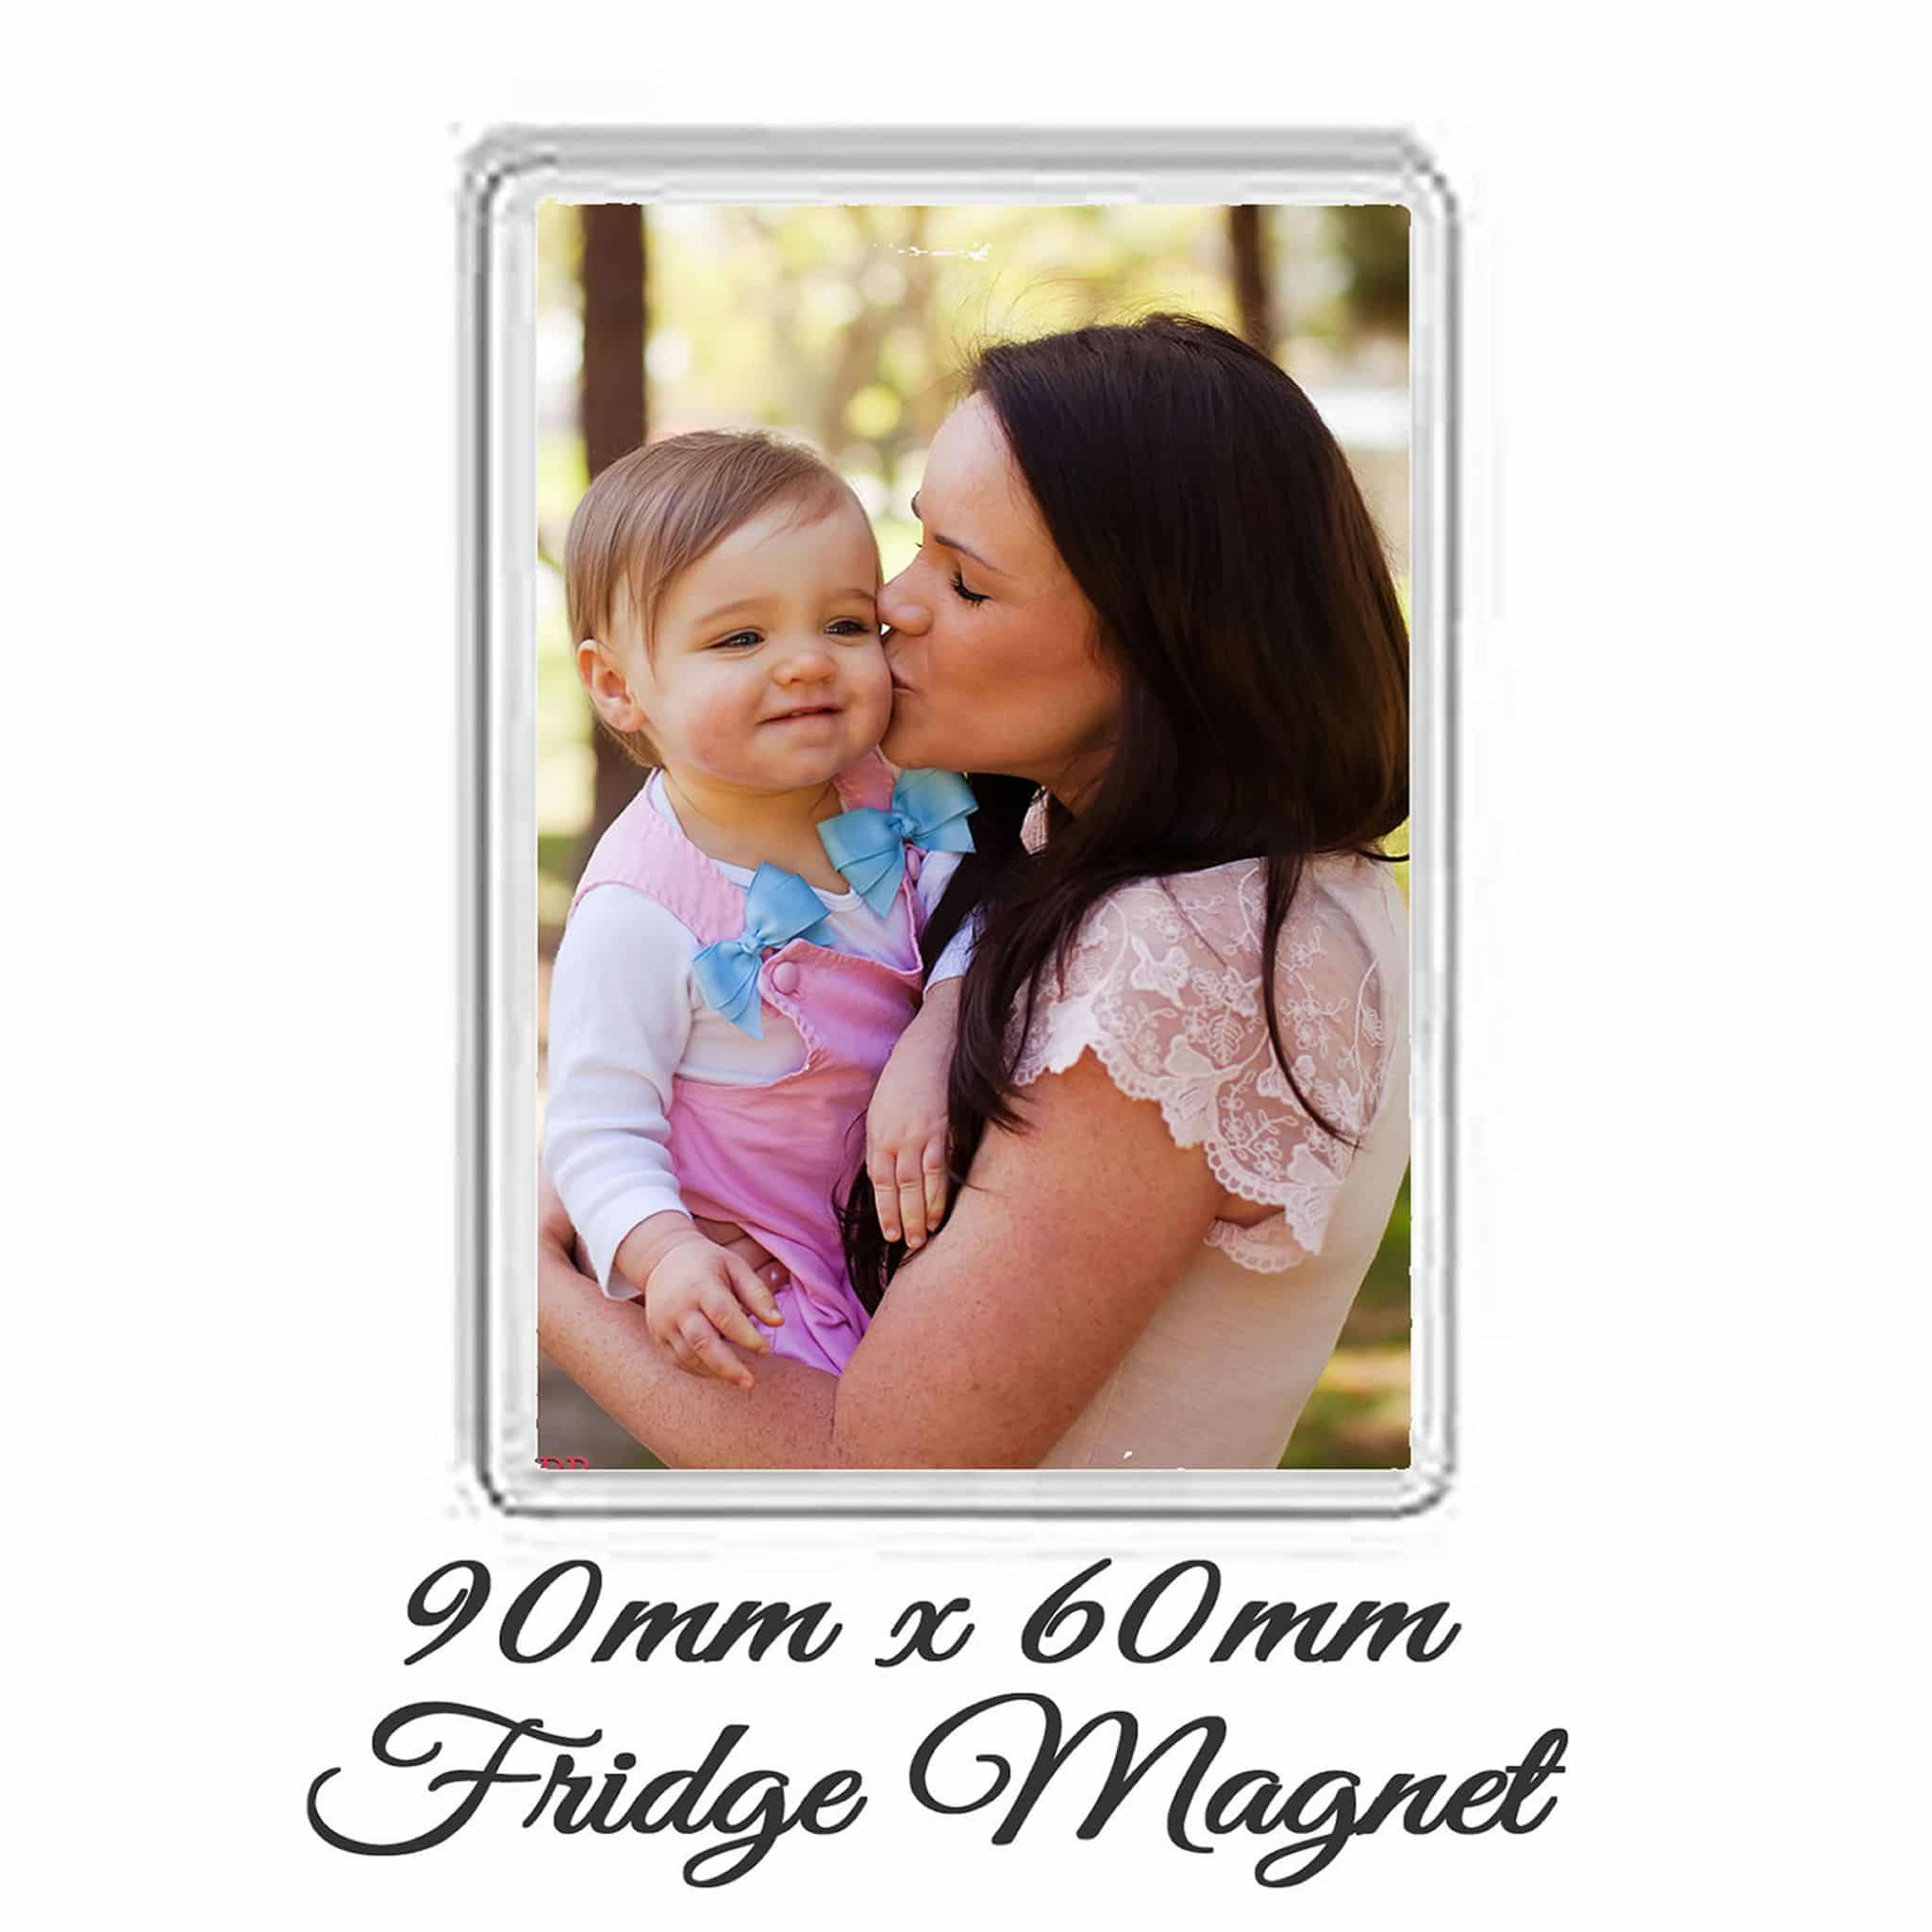 Little Gifts With Love - Personalised Jumbo Fridge Magnet 90mm x 60mm Add Any Photo or Image